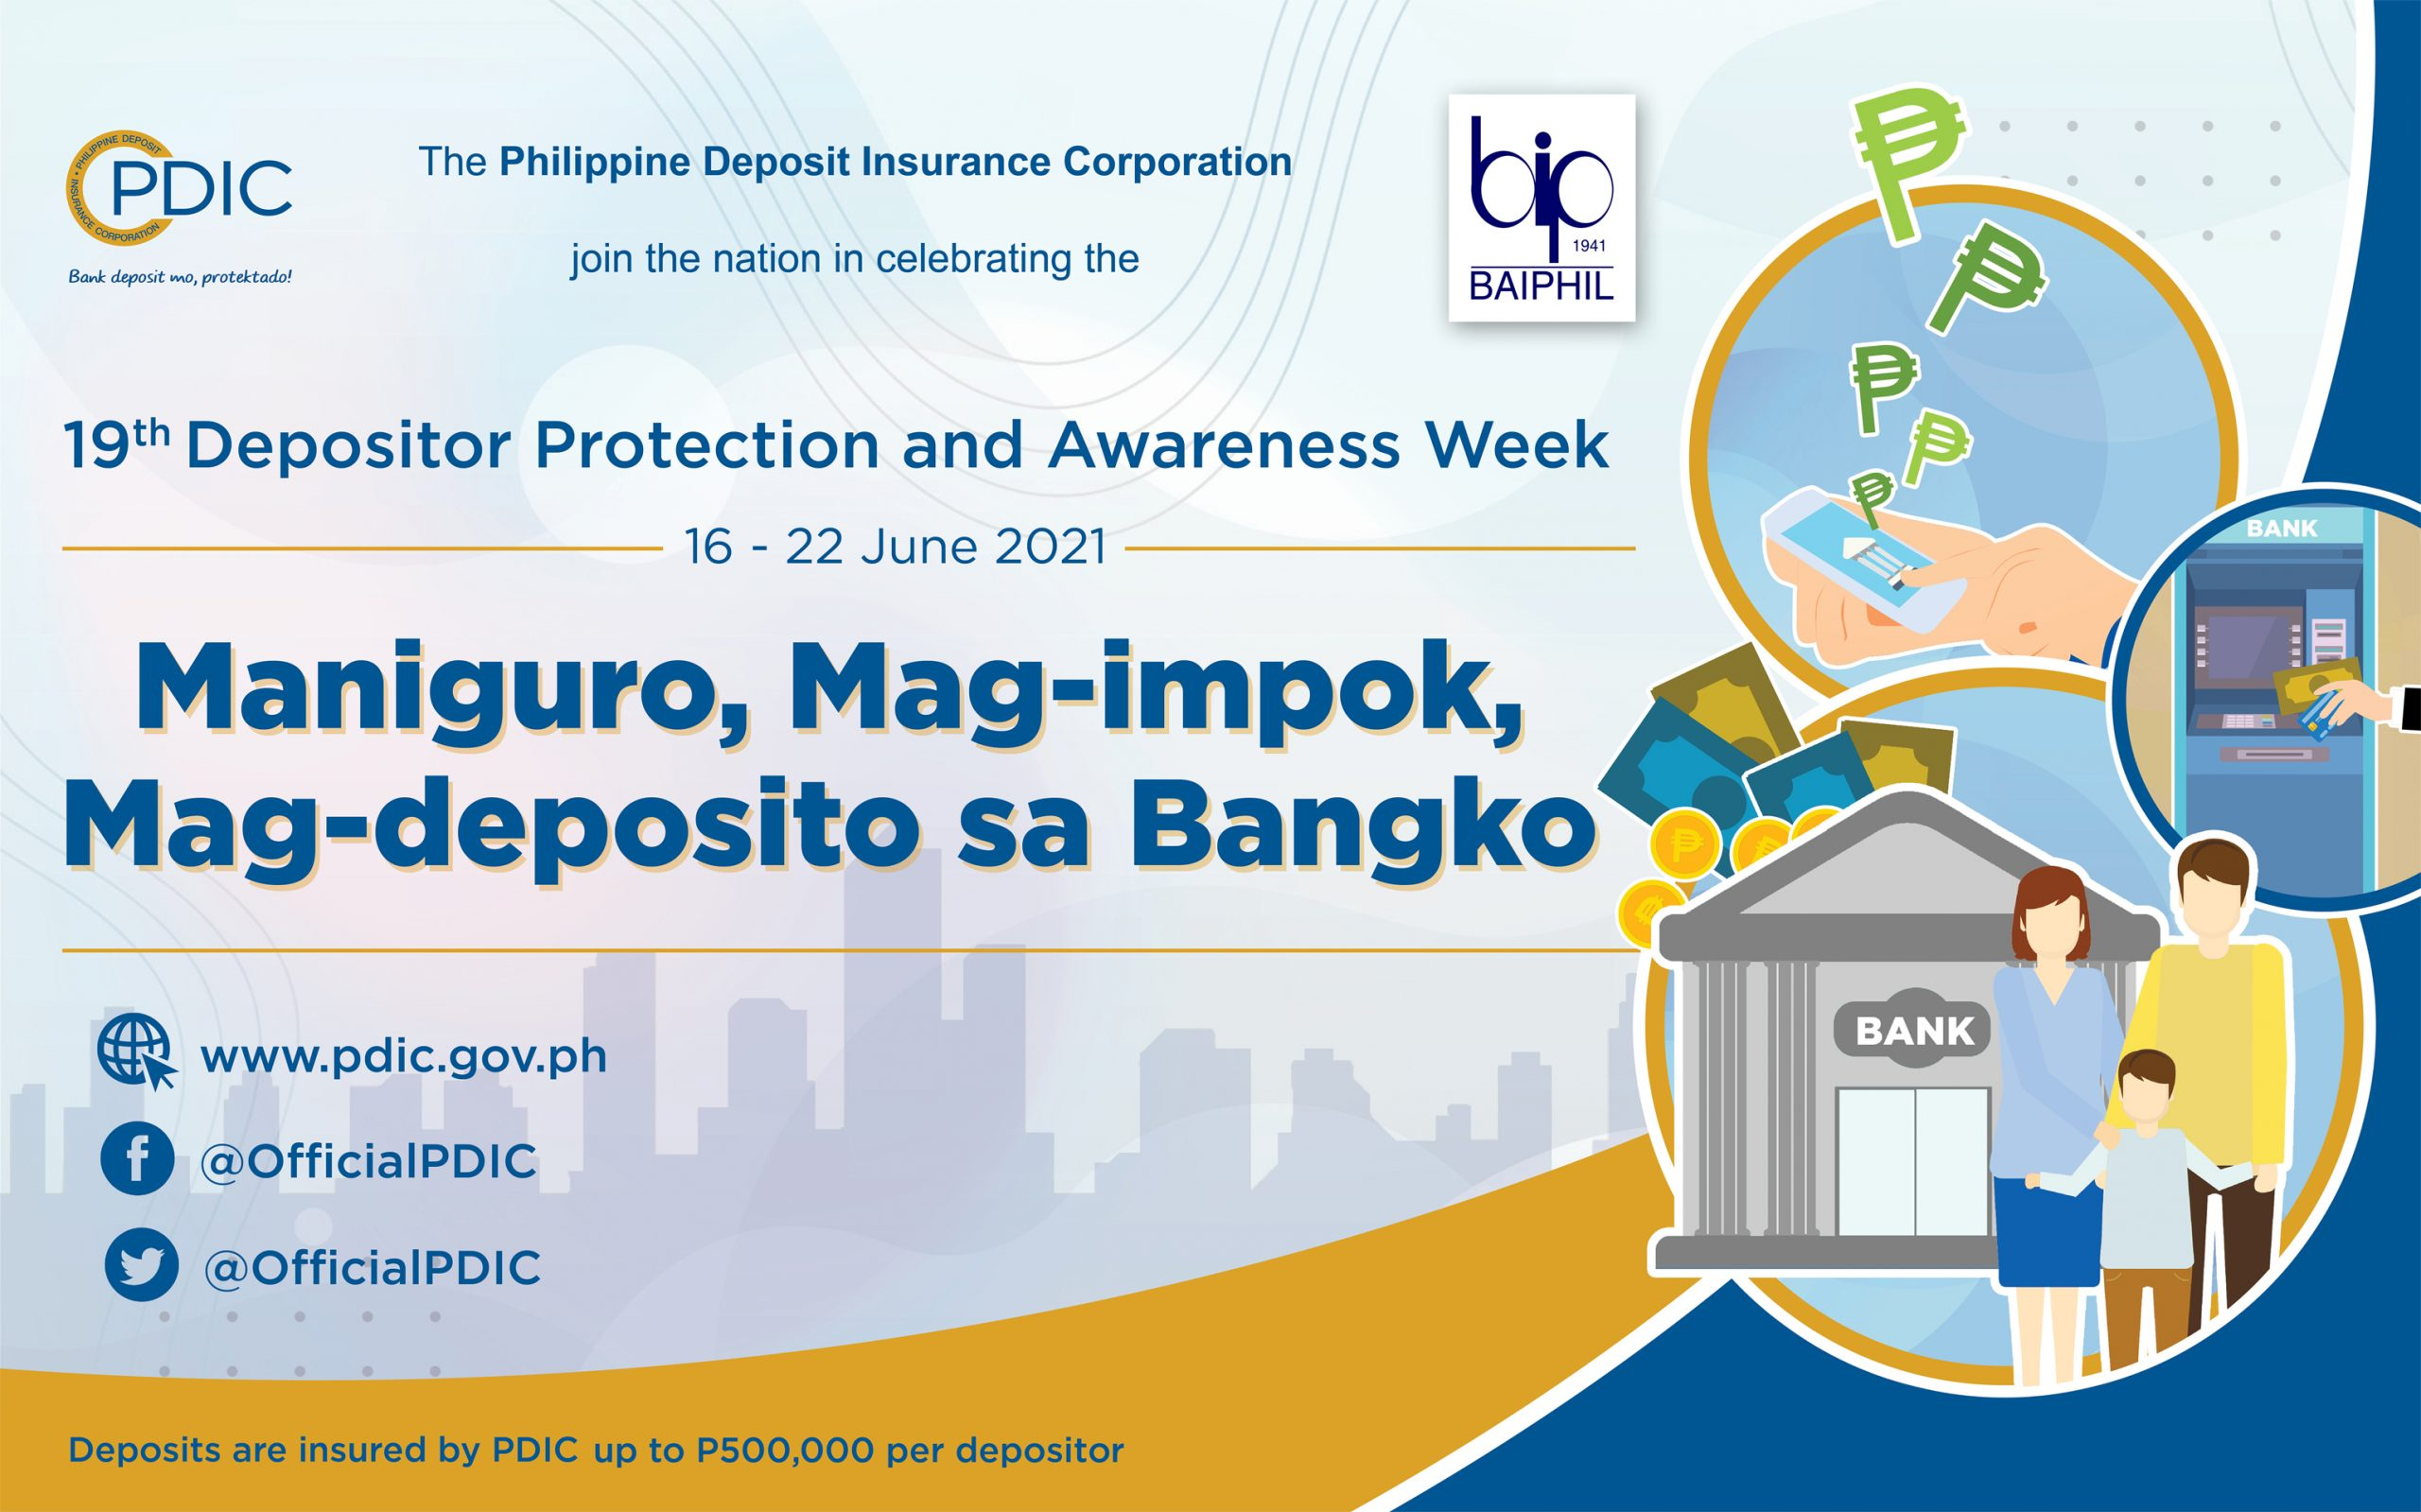 PDIC – 19th Depositor Protection and Awareness Week